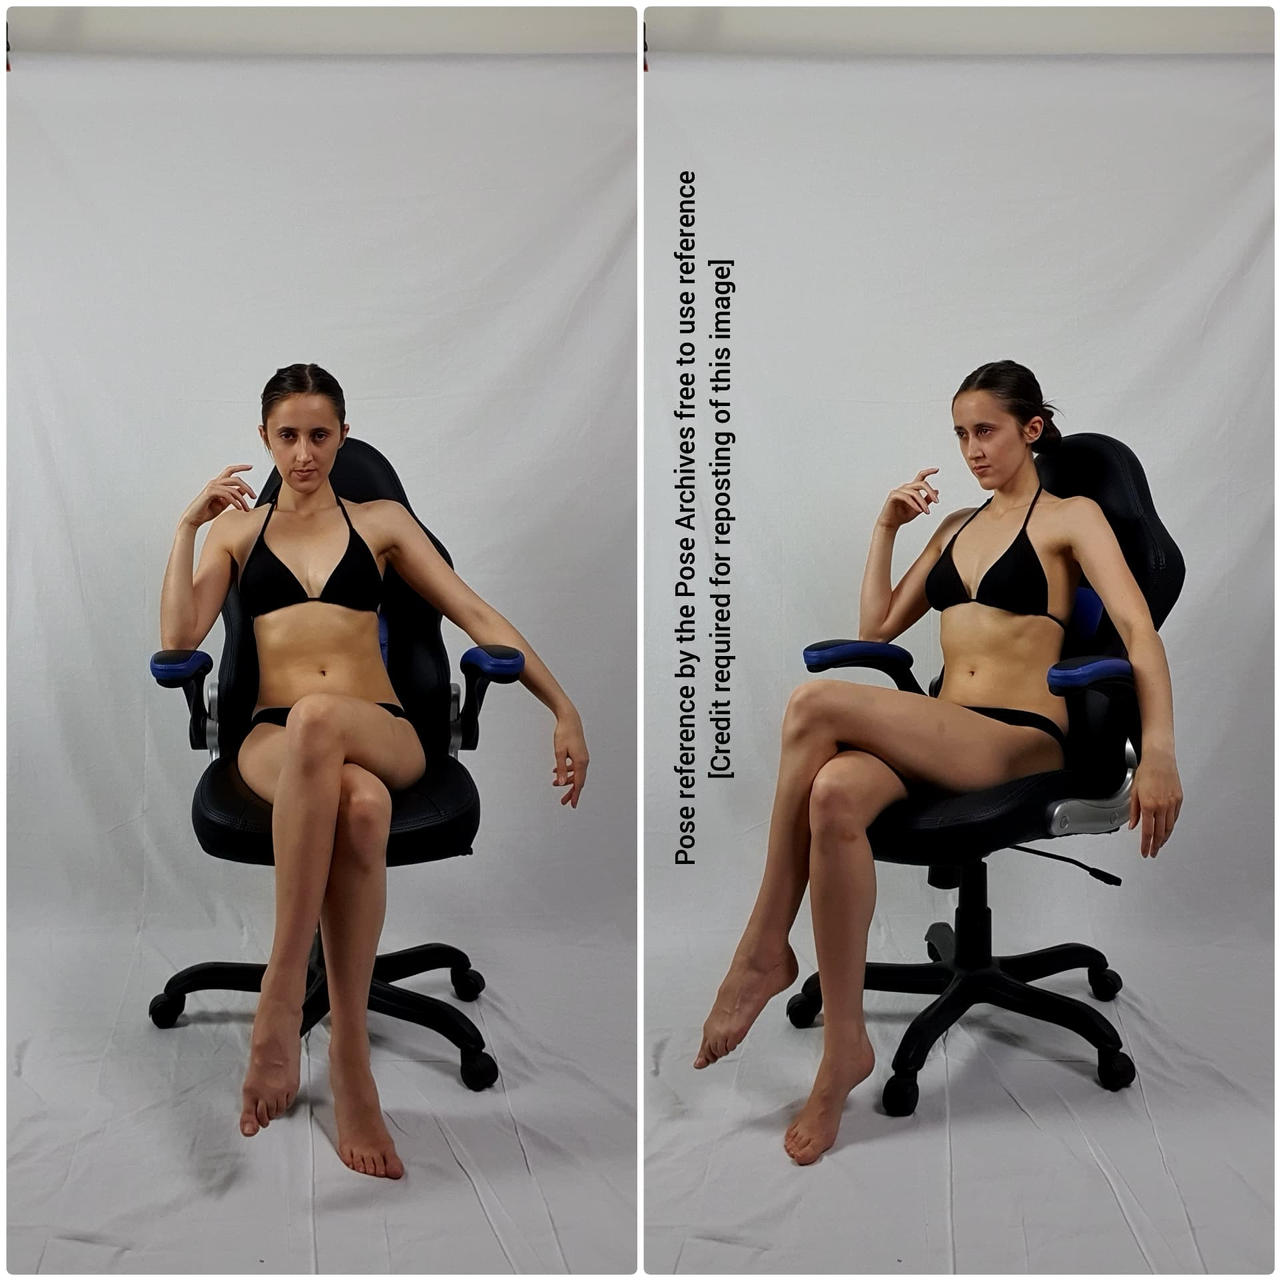 Female Villain Evil Sitting In Chair Pose By Theposearchives On Deviantart It also stretches your shoulders and opens the chest, be careful if you have hip or knee problems. female villain evil sitting in chair